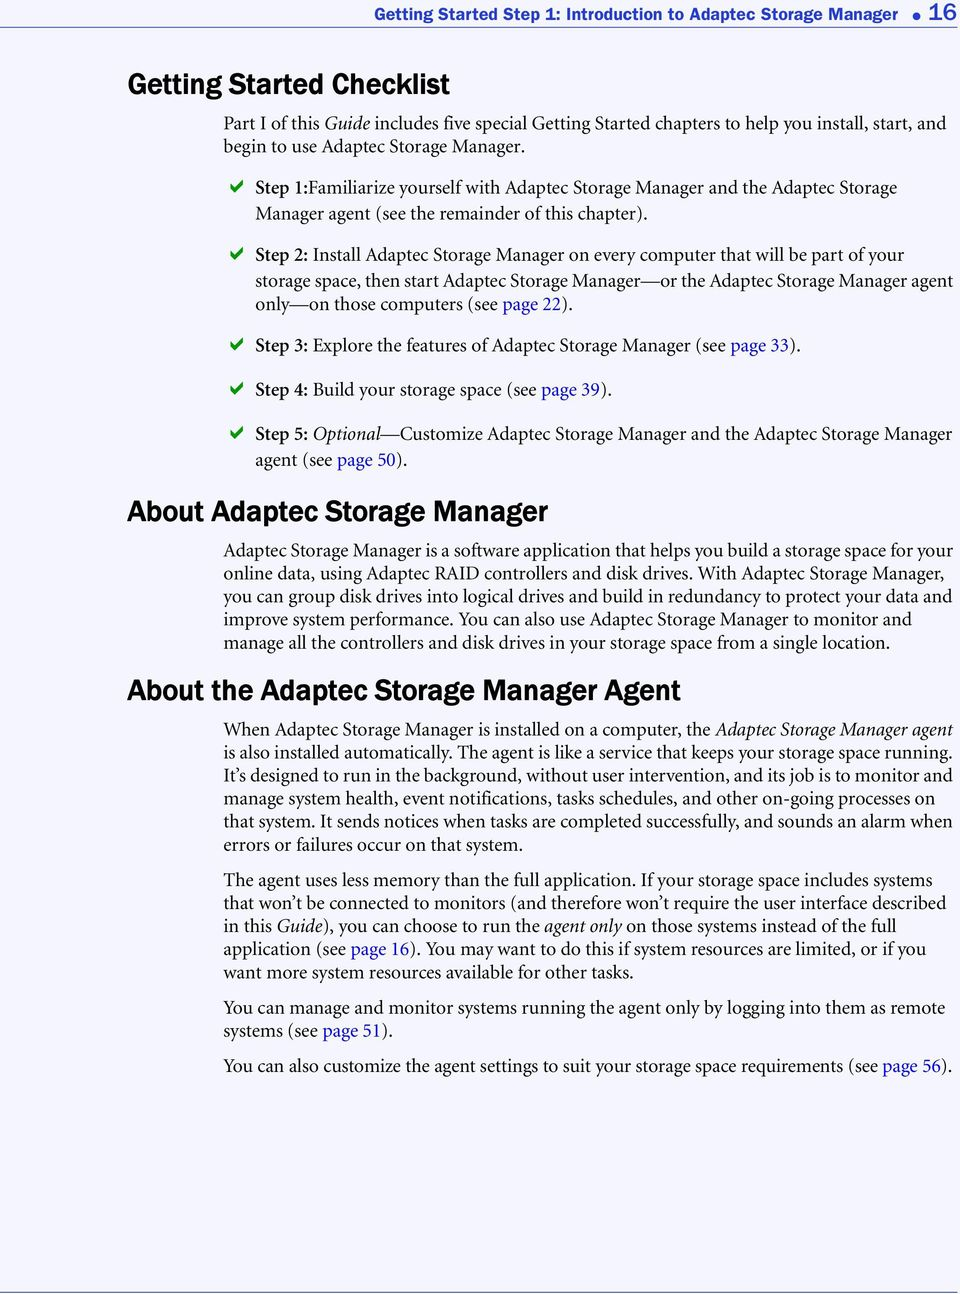 Step 2: Install Adaptec Storage Manager on every computer that will be part of your storage space, then start Adaptec Storage Manager or the Adaptec Storage Manager agent only on those computers (see